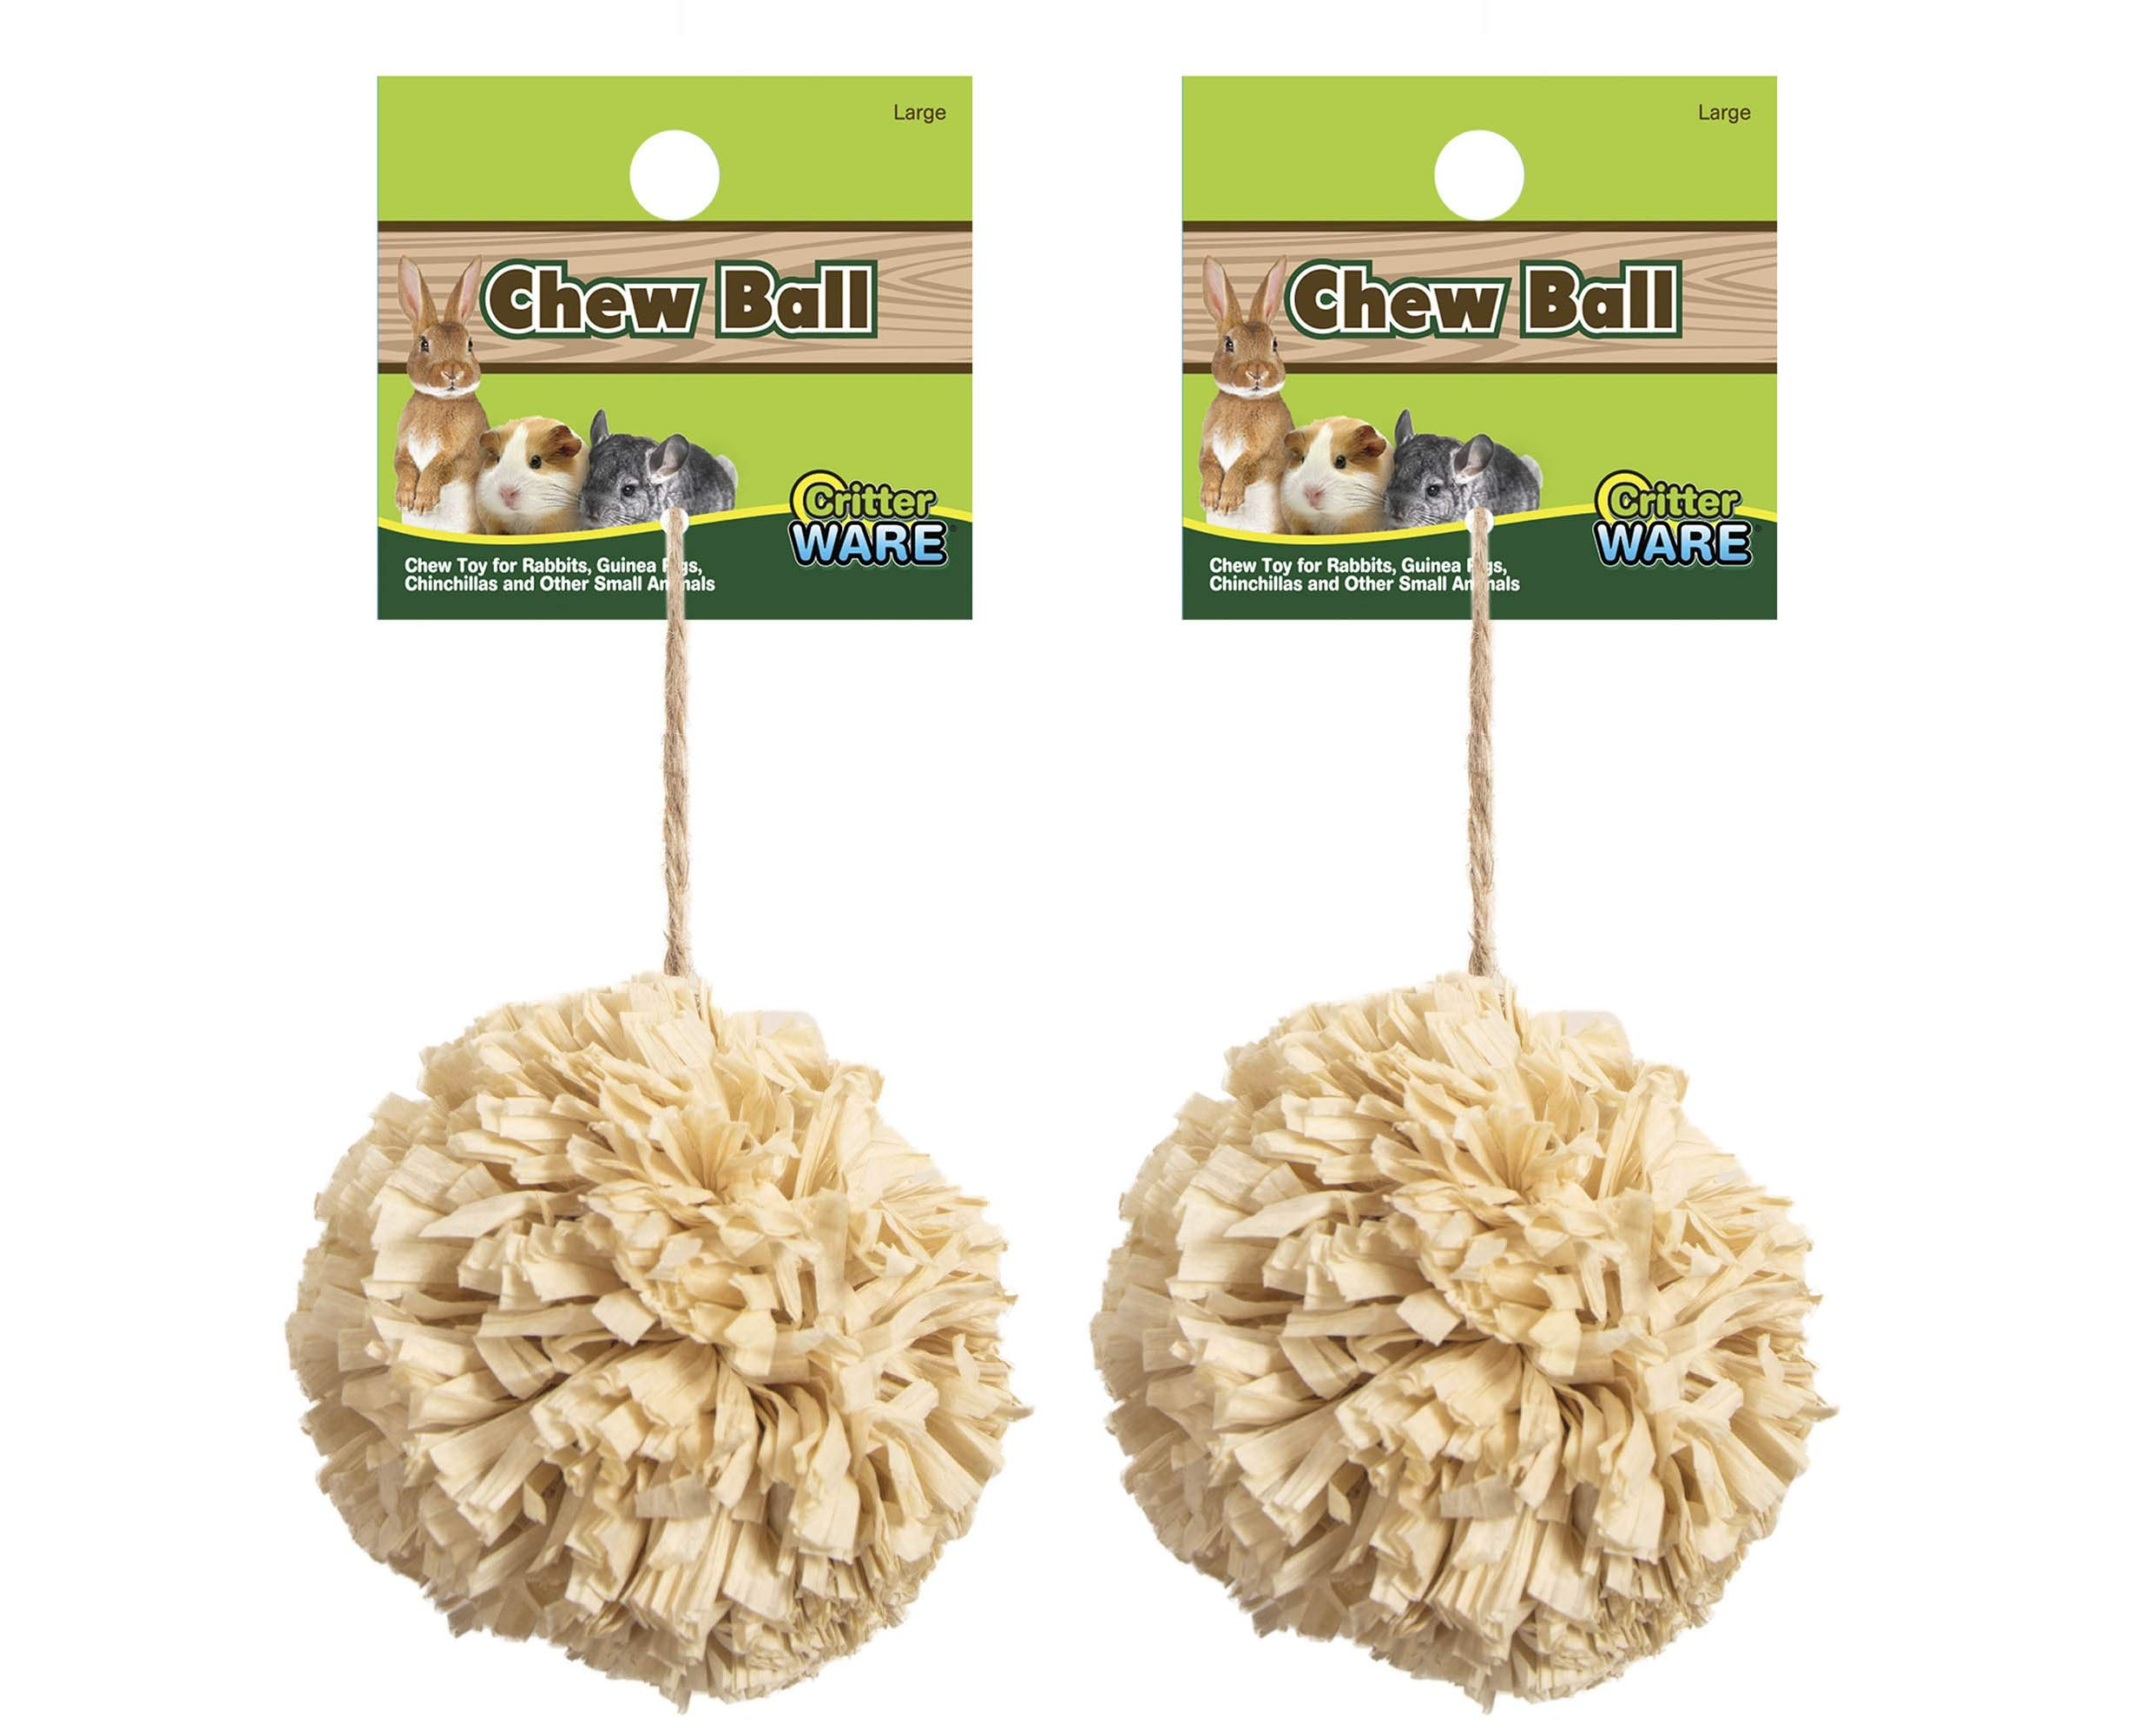 (2 Pack) Ware Natural Corn Leaf Small Pet Corn Ball Toys, Large by Ware Manufacturing